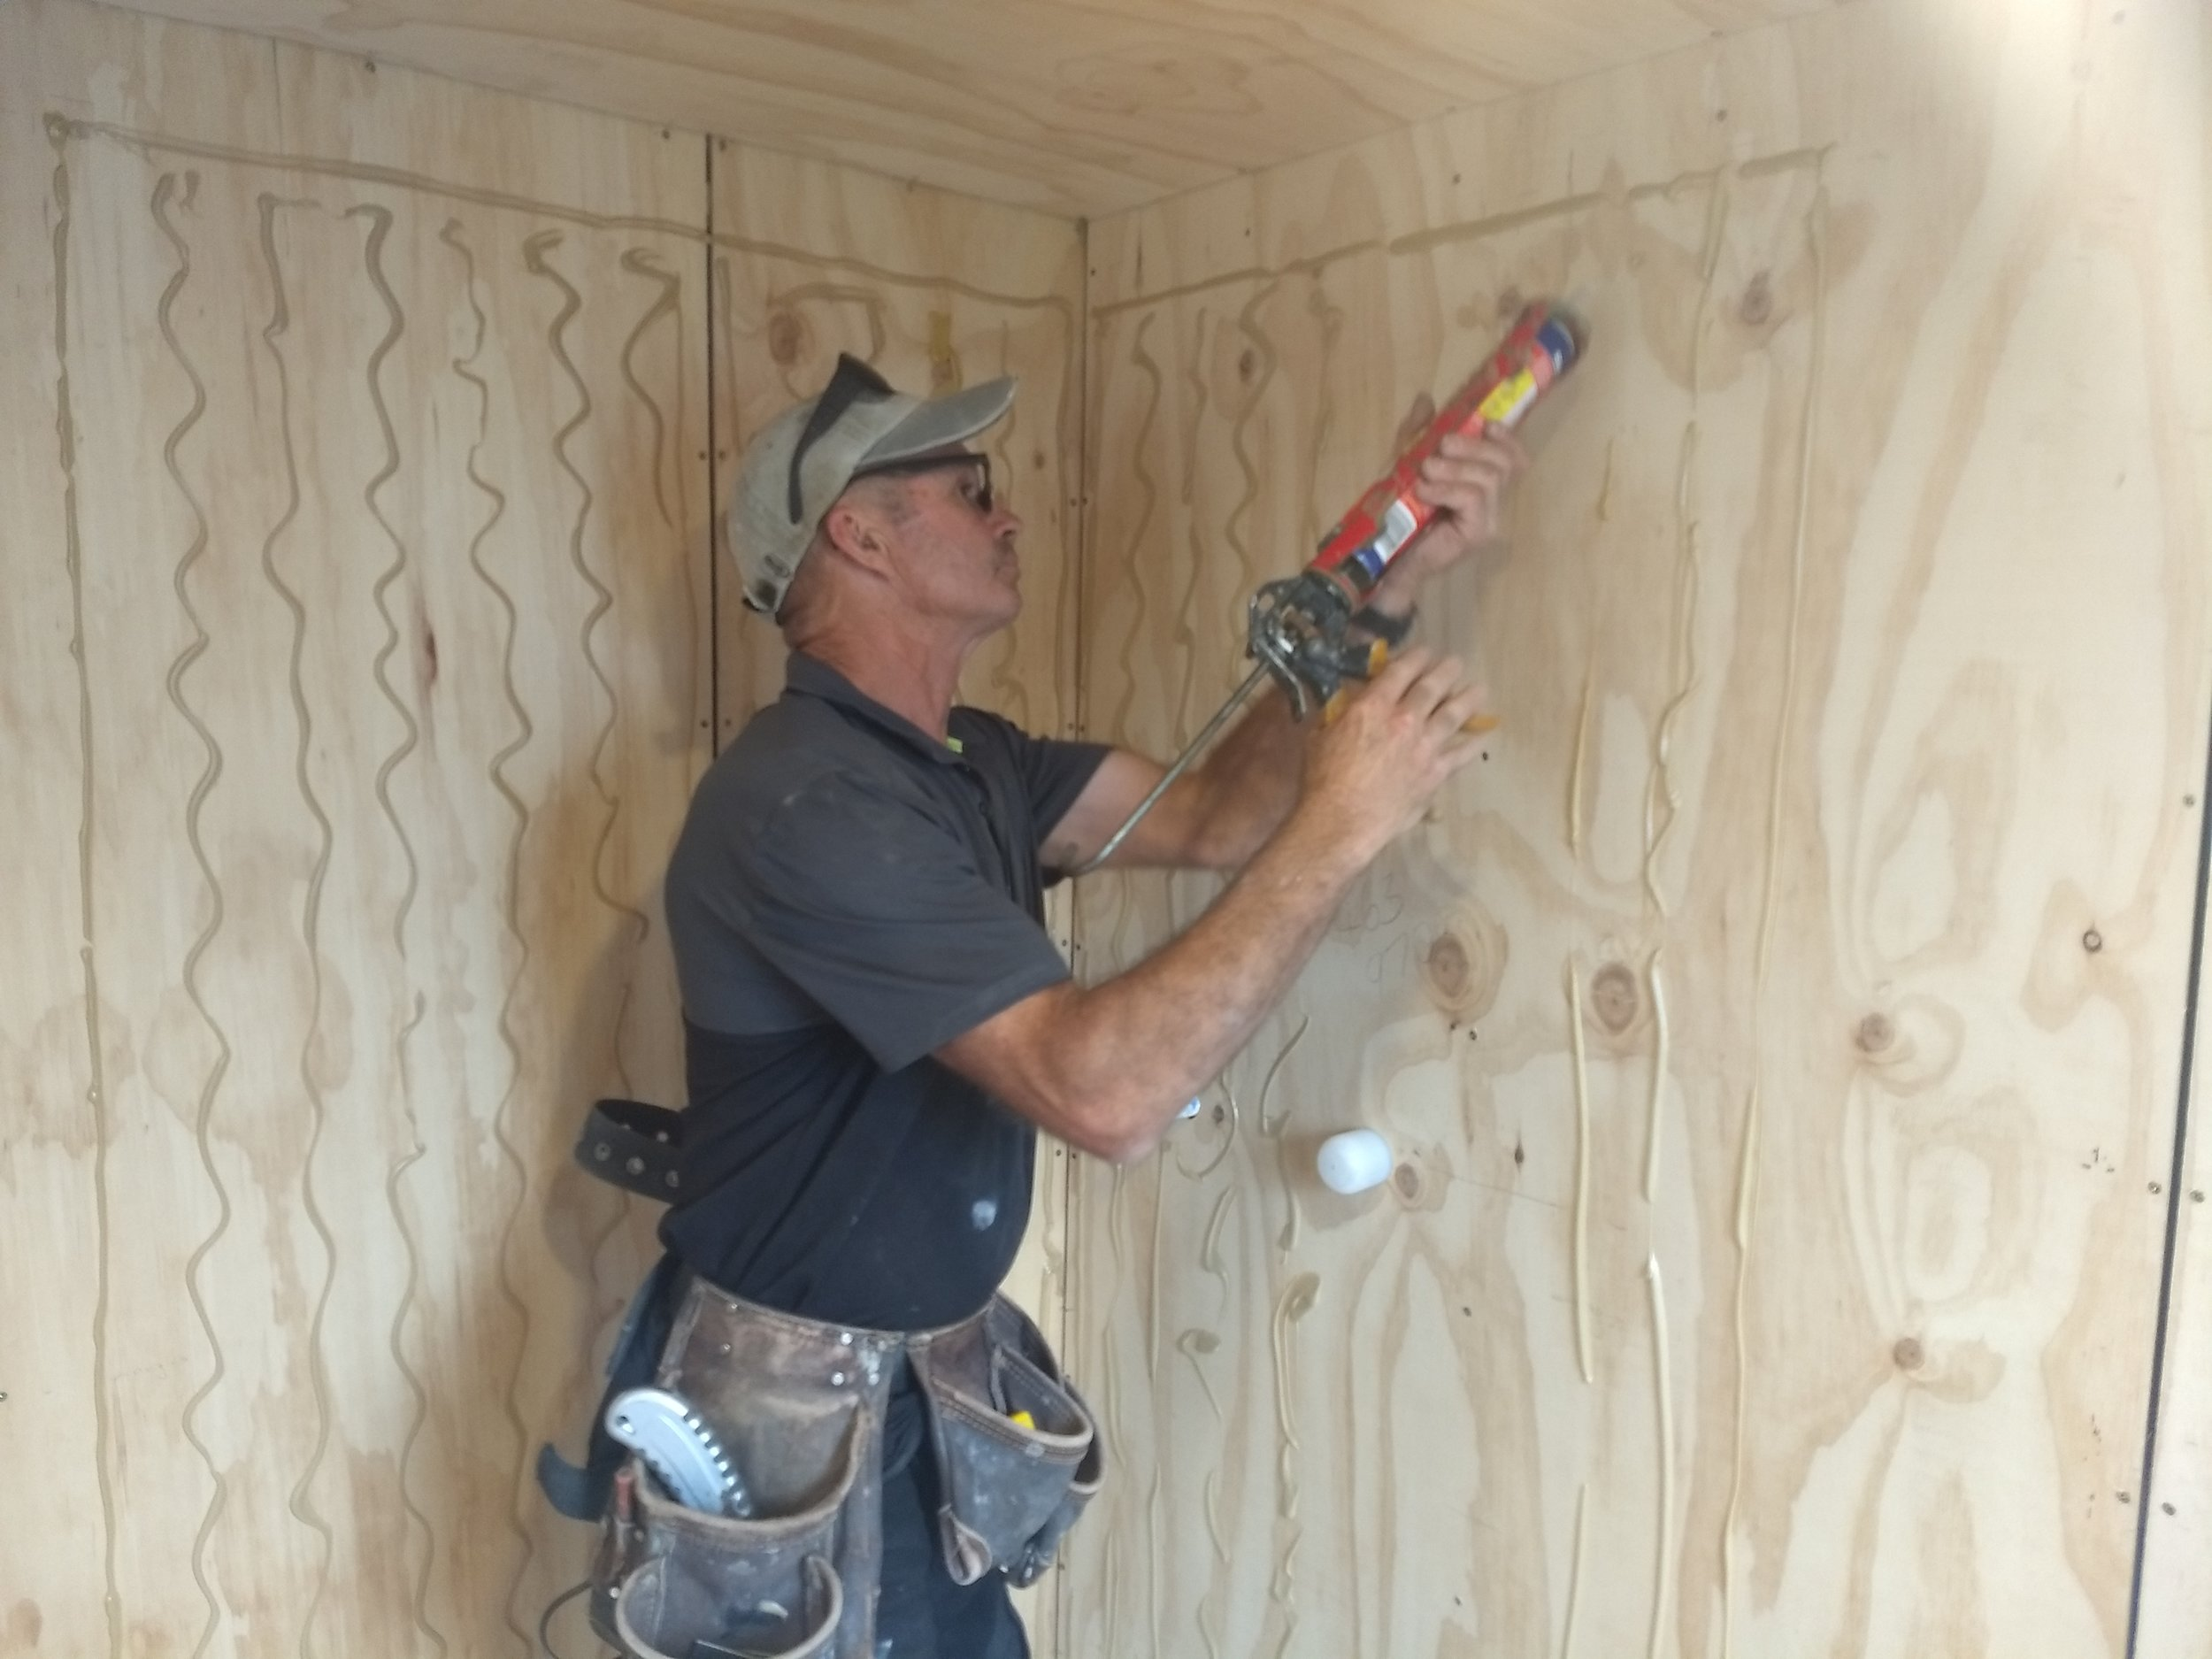 Grant attaches the acrylic shower lining.